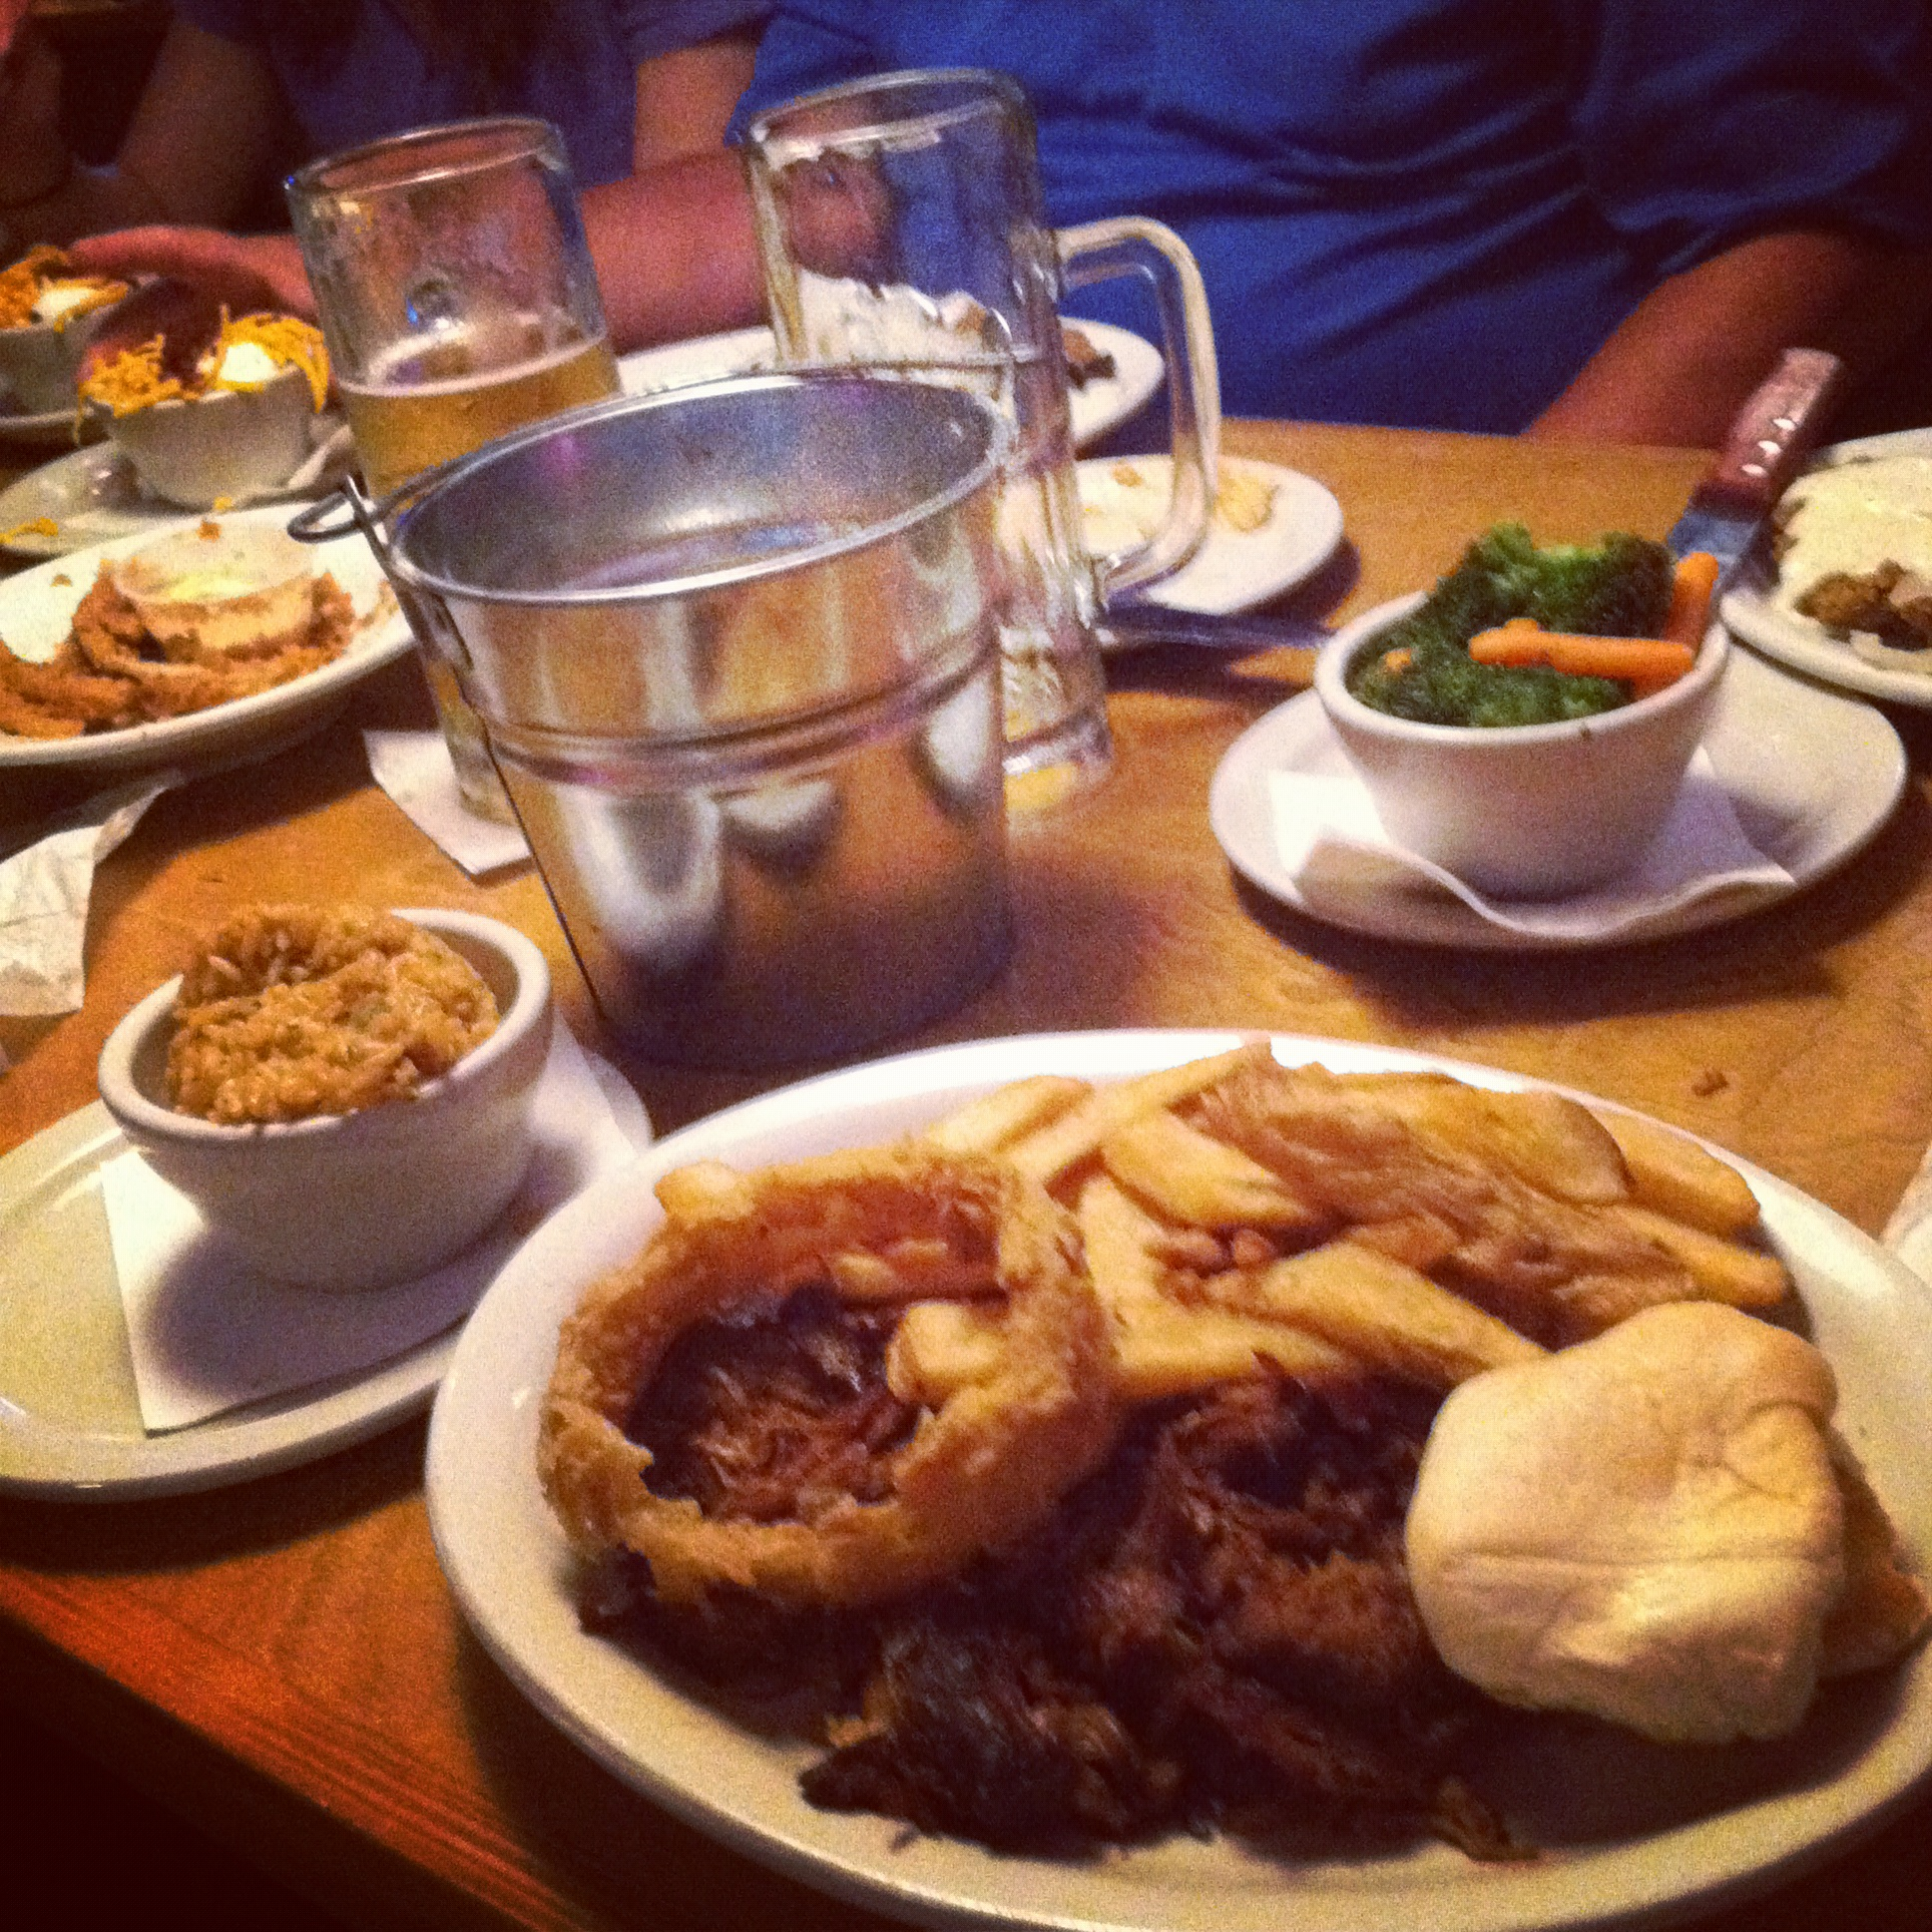 A meal I had (the closest plate to the camera) at Texas Roadhouse about four years back.